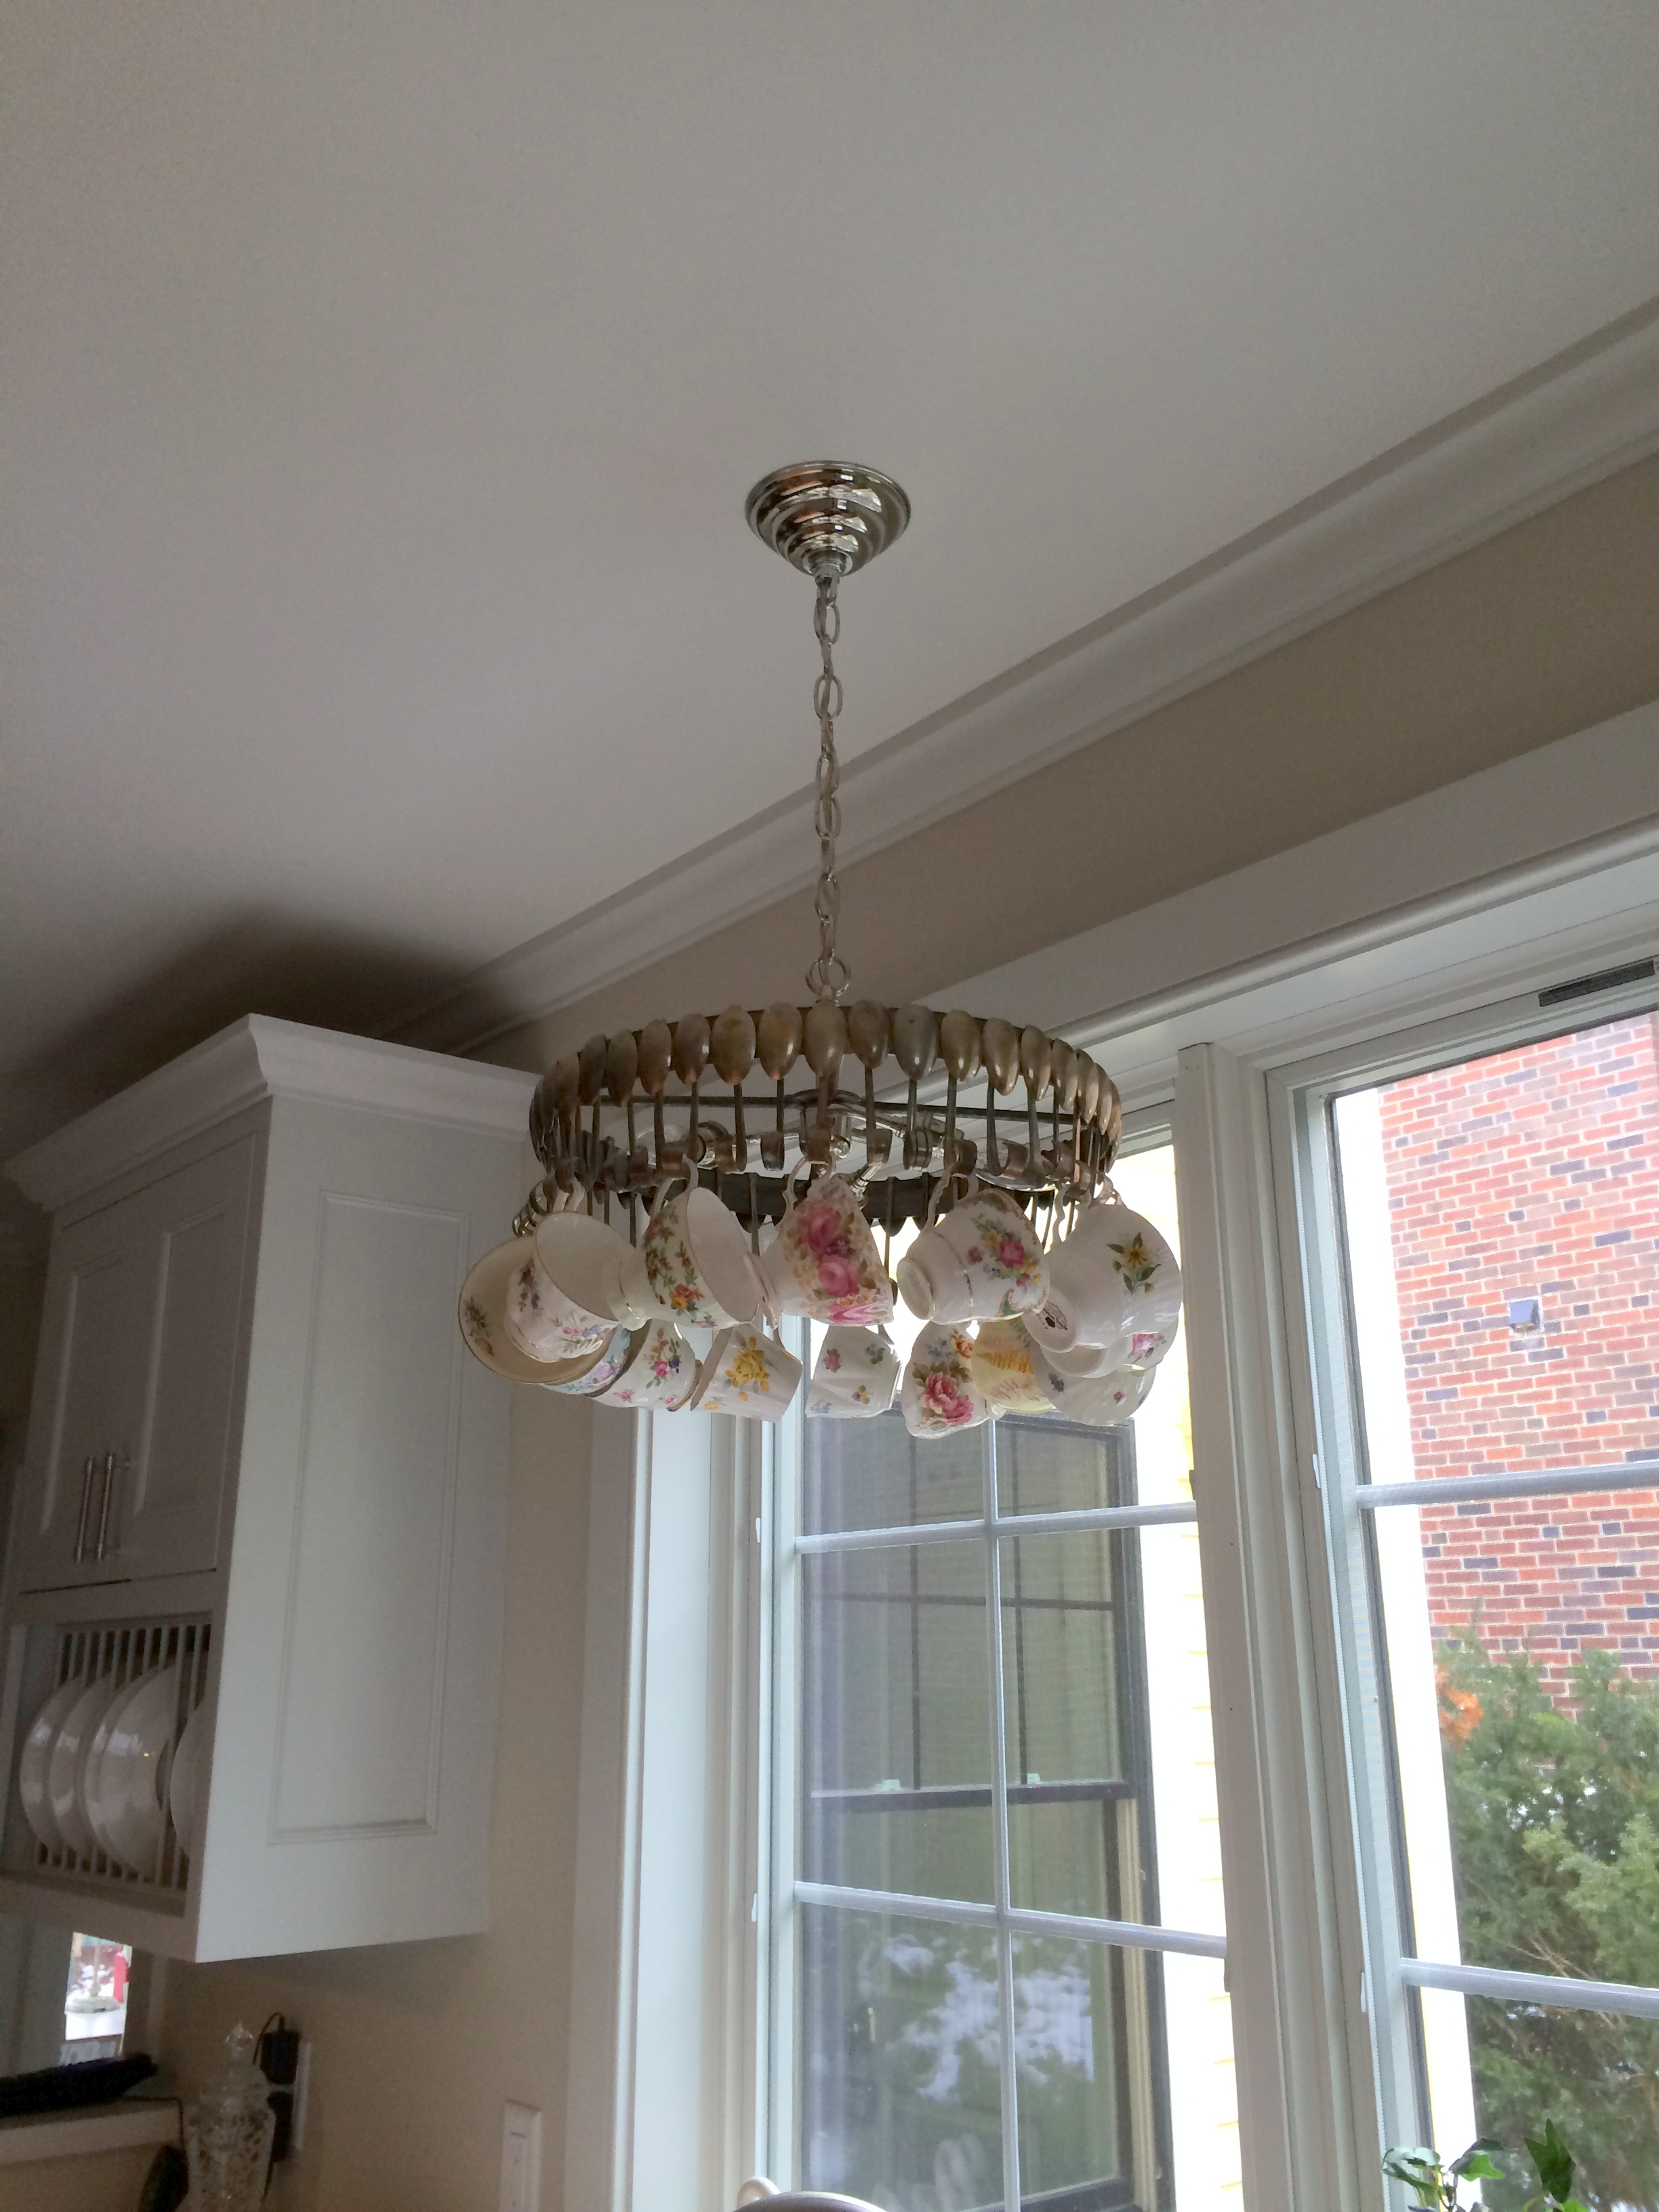 Upcycled home accent - a vintage spoon chandelier